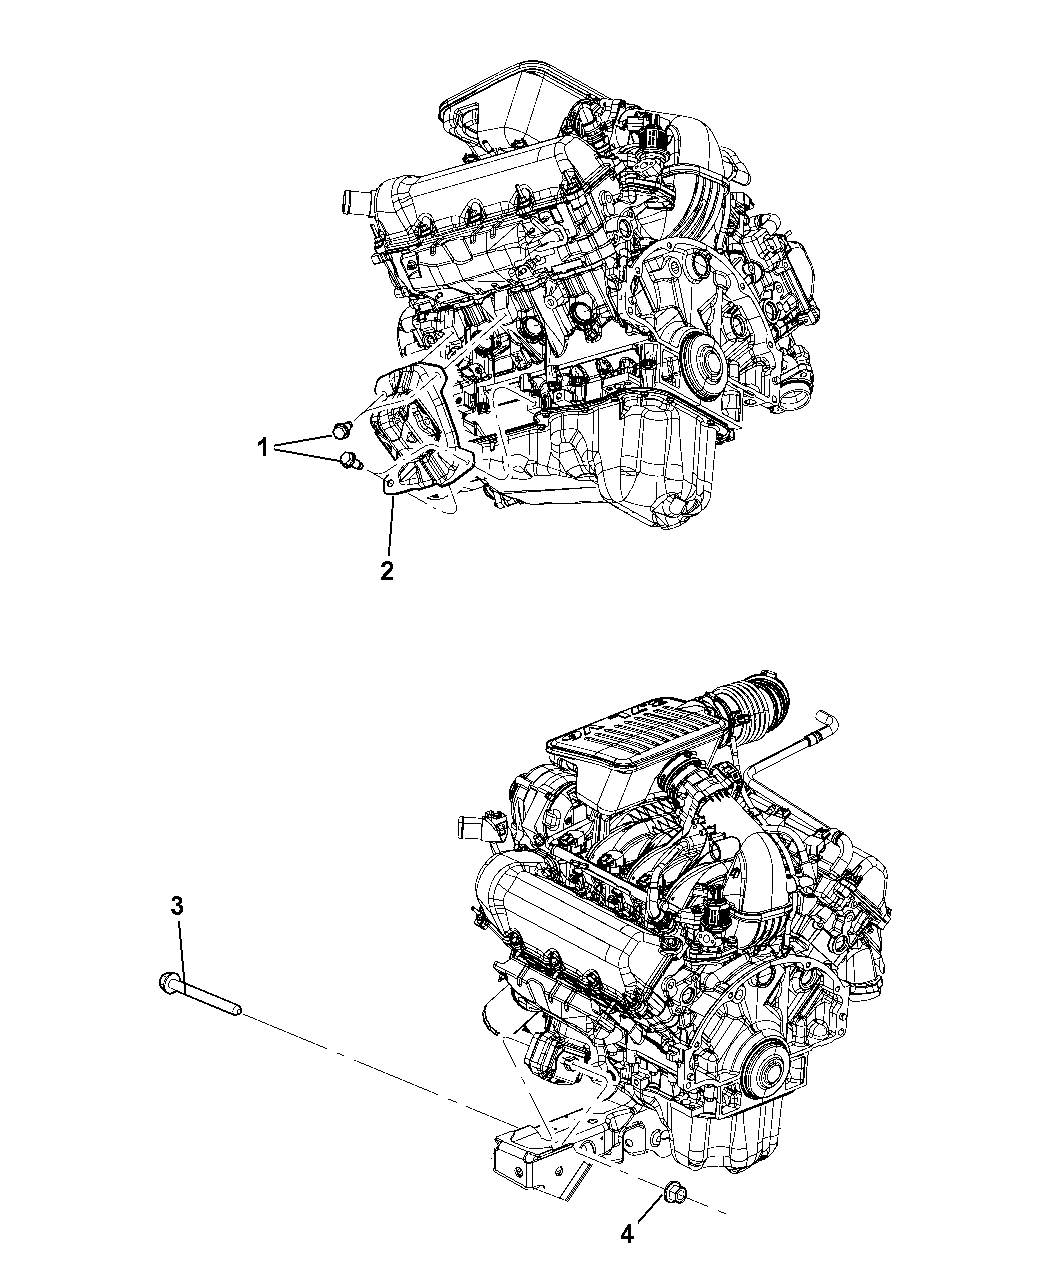 2010 Jeep Liberty Engine Mounting Left Side - Thumbnail 2